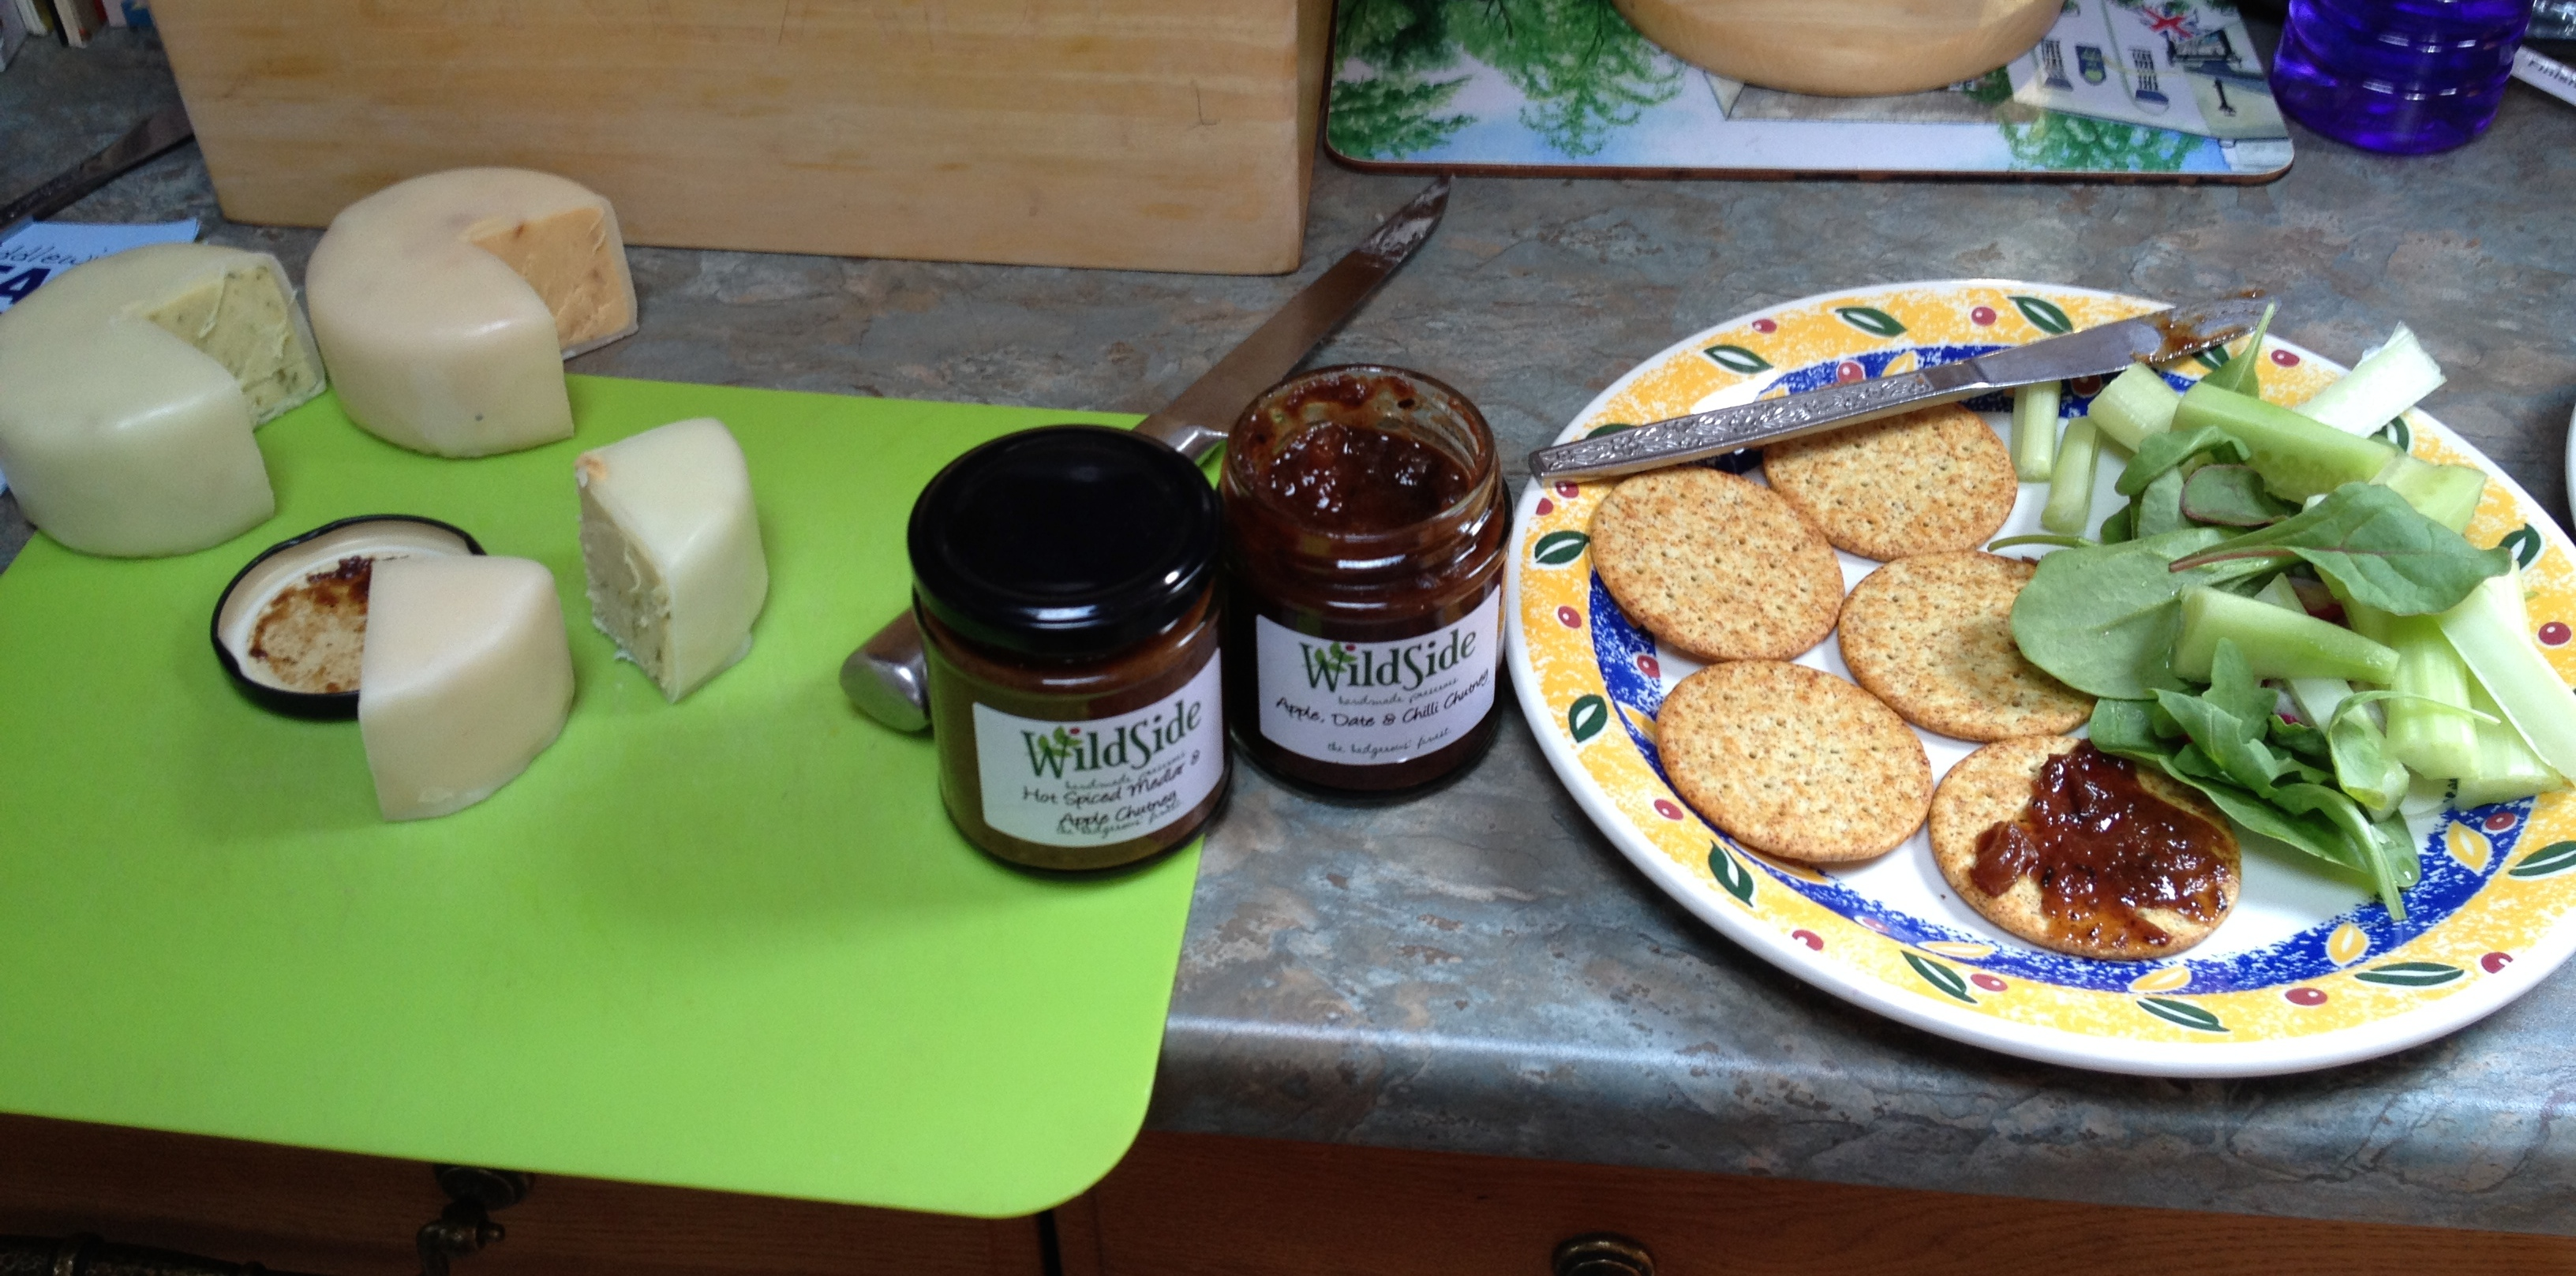 Lunch with cheese from the cheese boat, and chutneys from Wild Side (not trading at Middlewhich, bought from Droitiwch!)